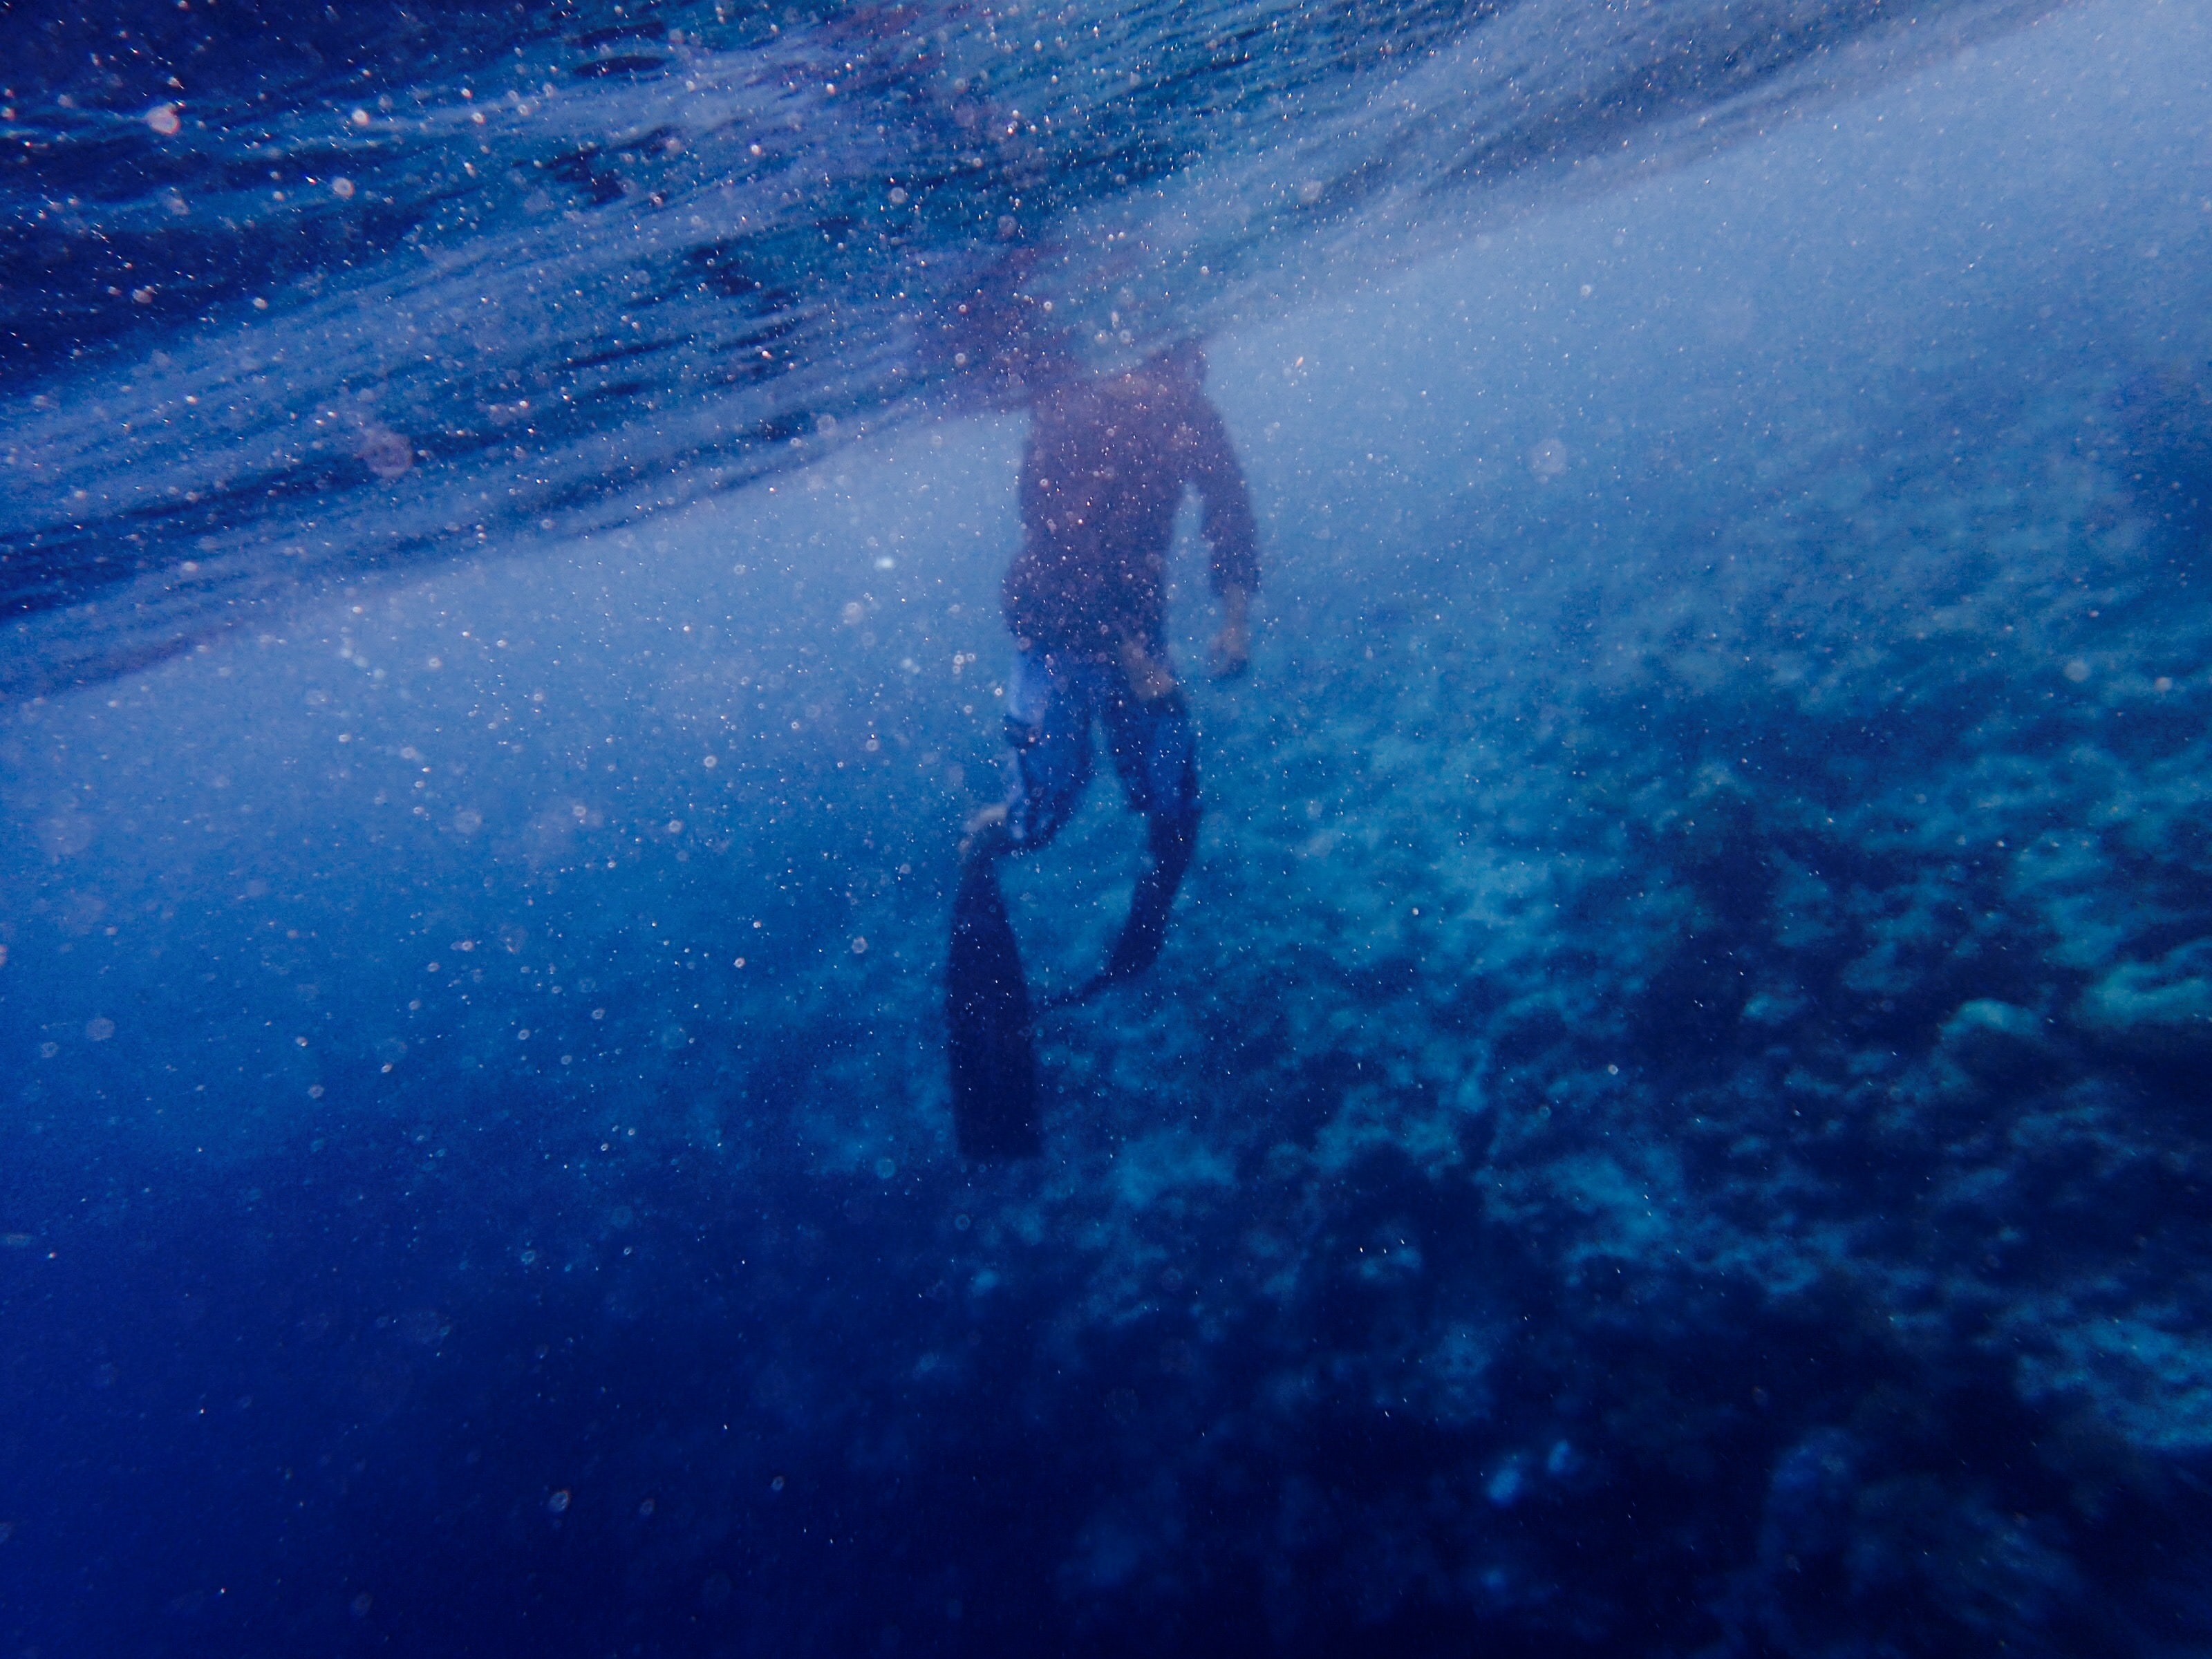 A diver underwater in the deep blue ocean.